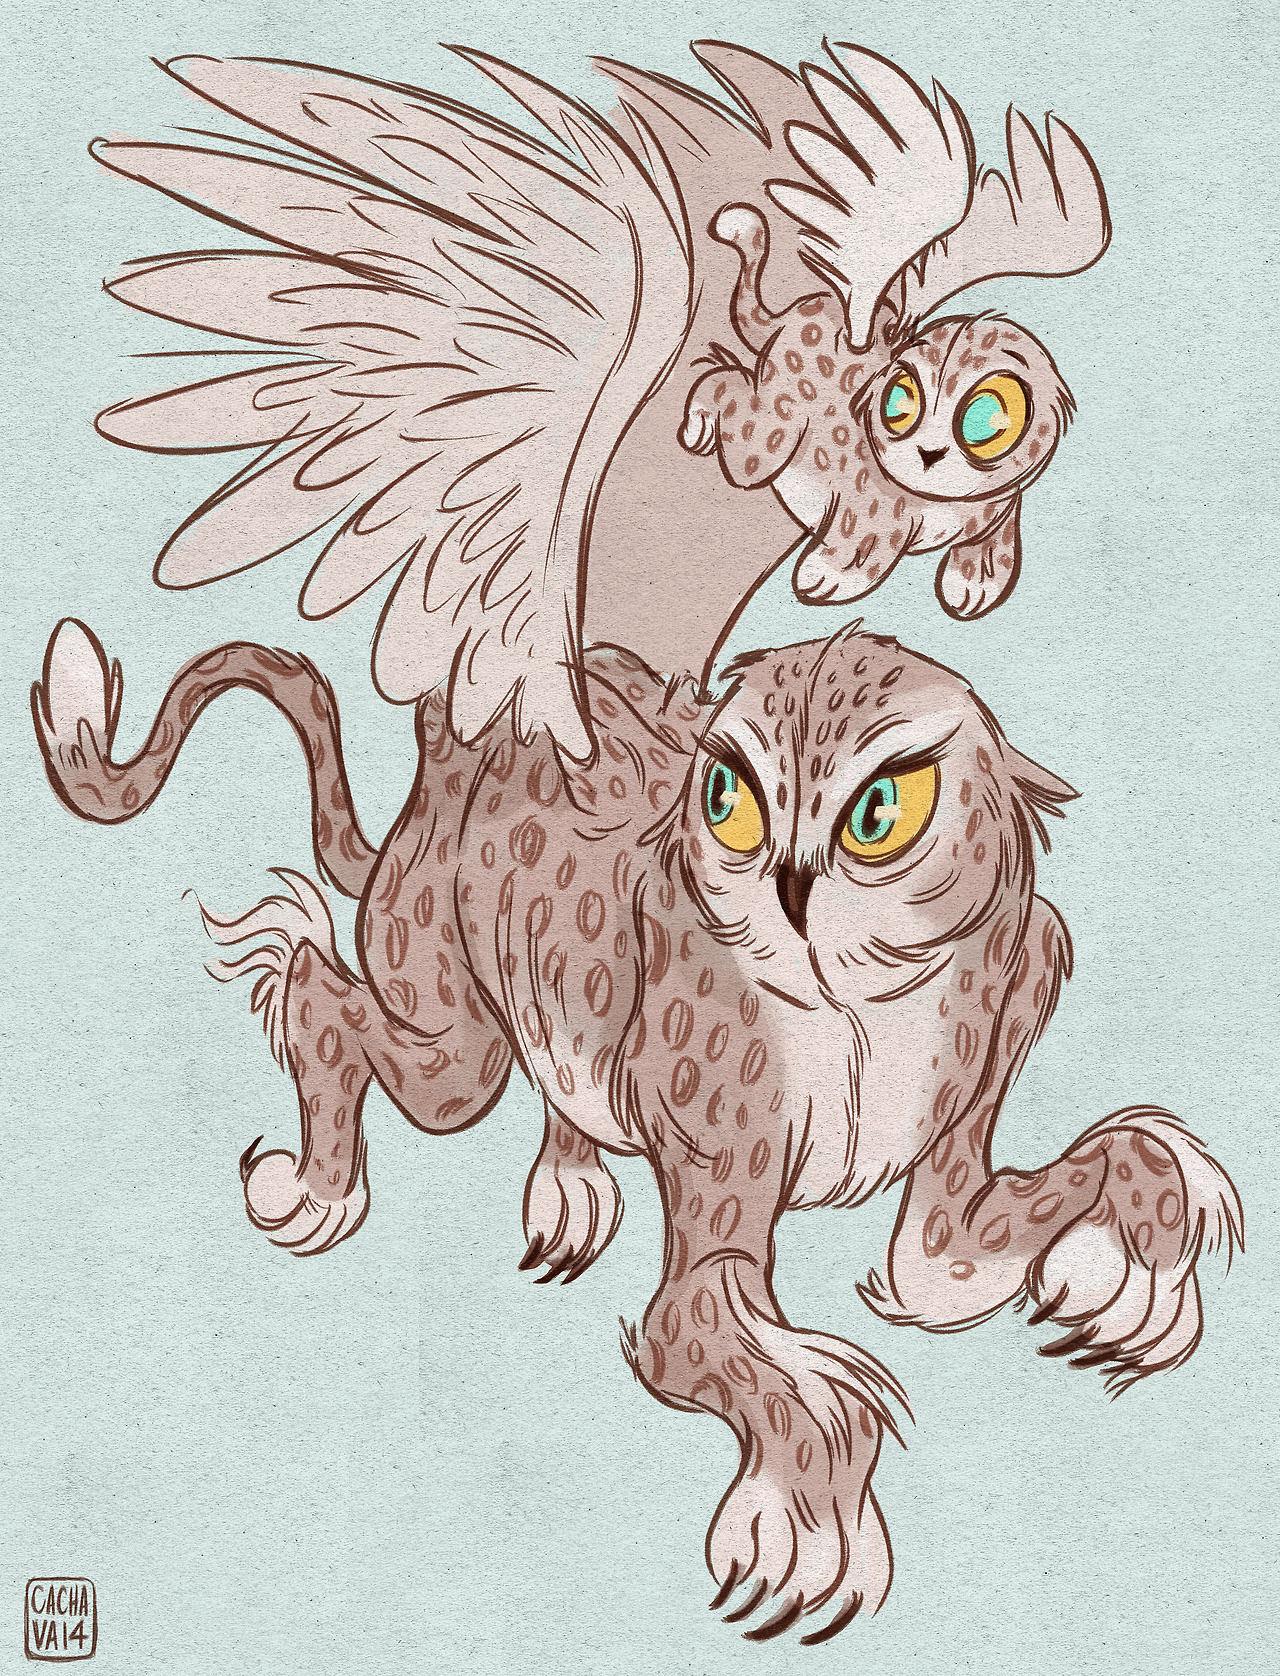 catching up today! here's a mom and baby griffin for Sketch Dailies!